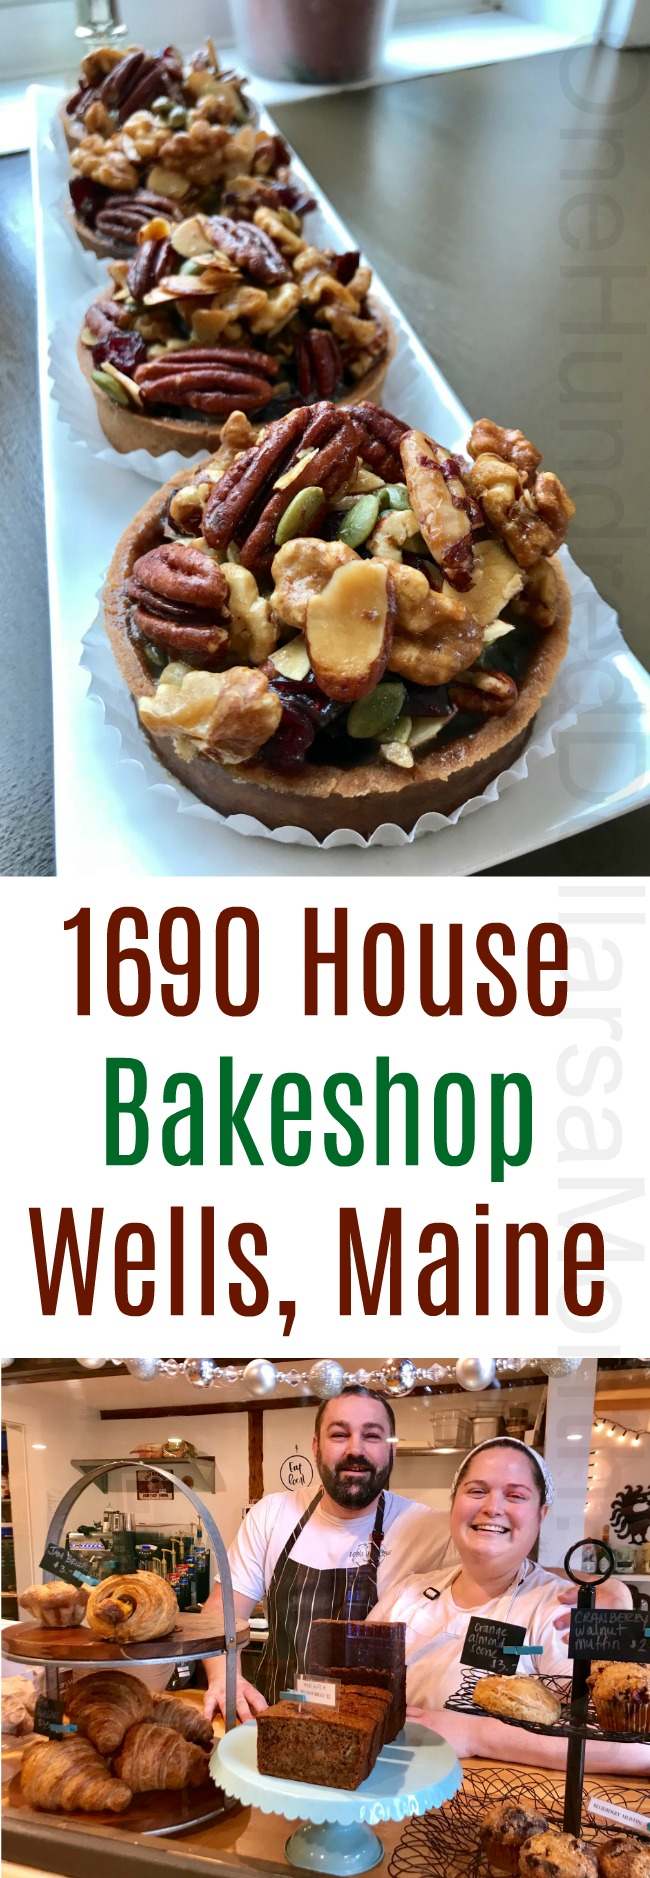 1690 House Bakeshop + Cafe in Wells, Maine